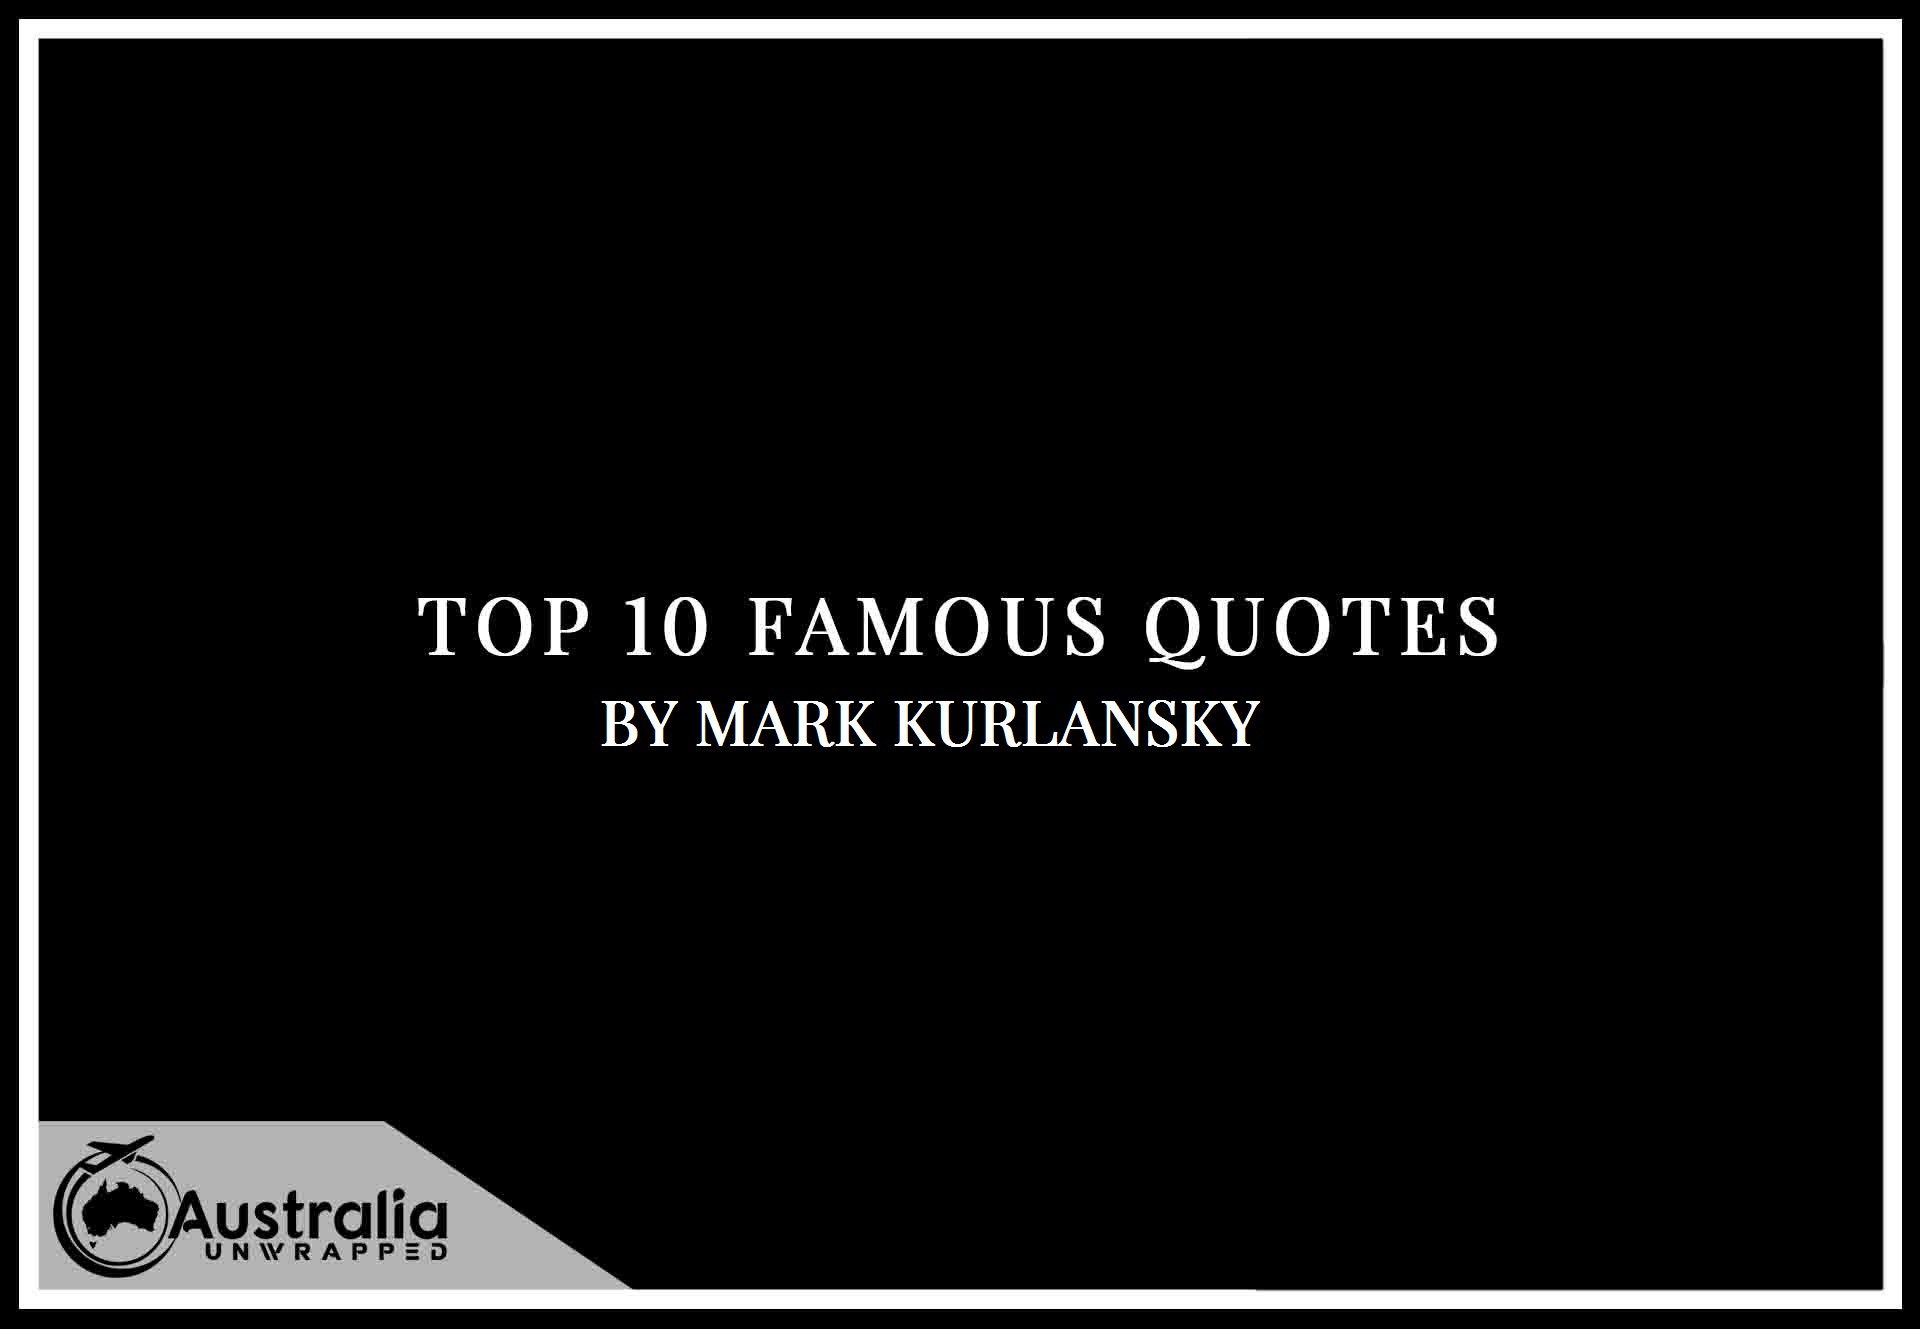 Mark Kurlansky's Top 10 Popular and Famous Quotes